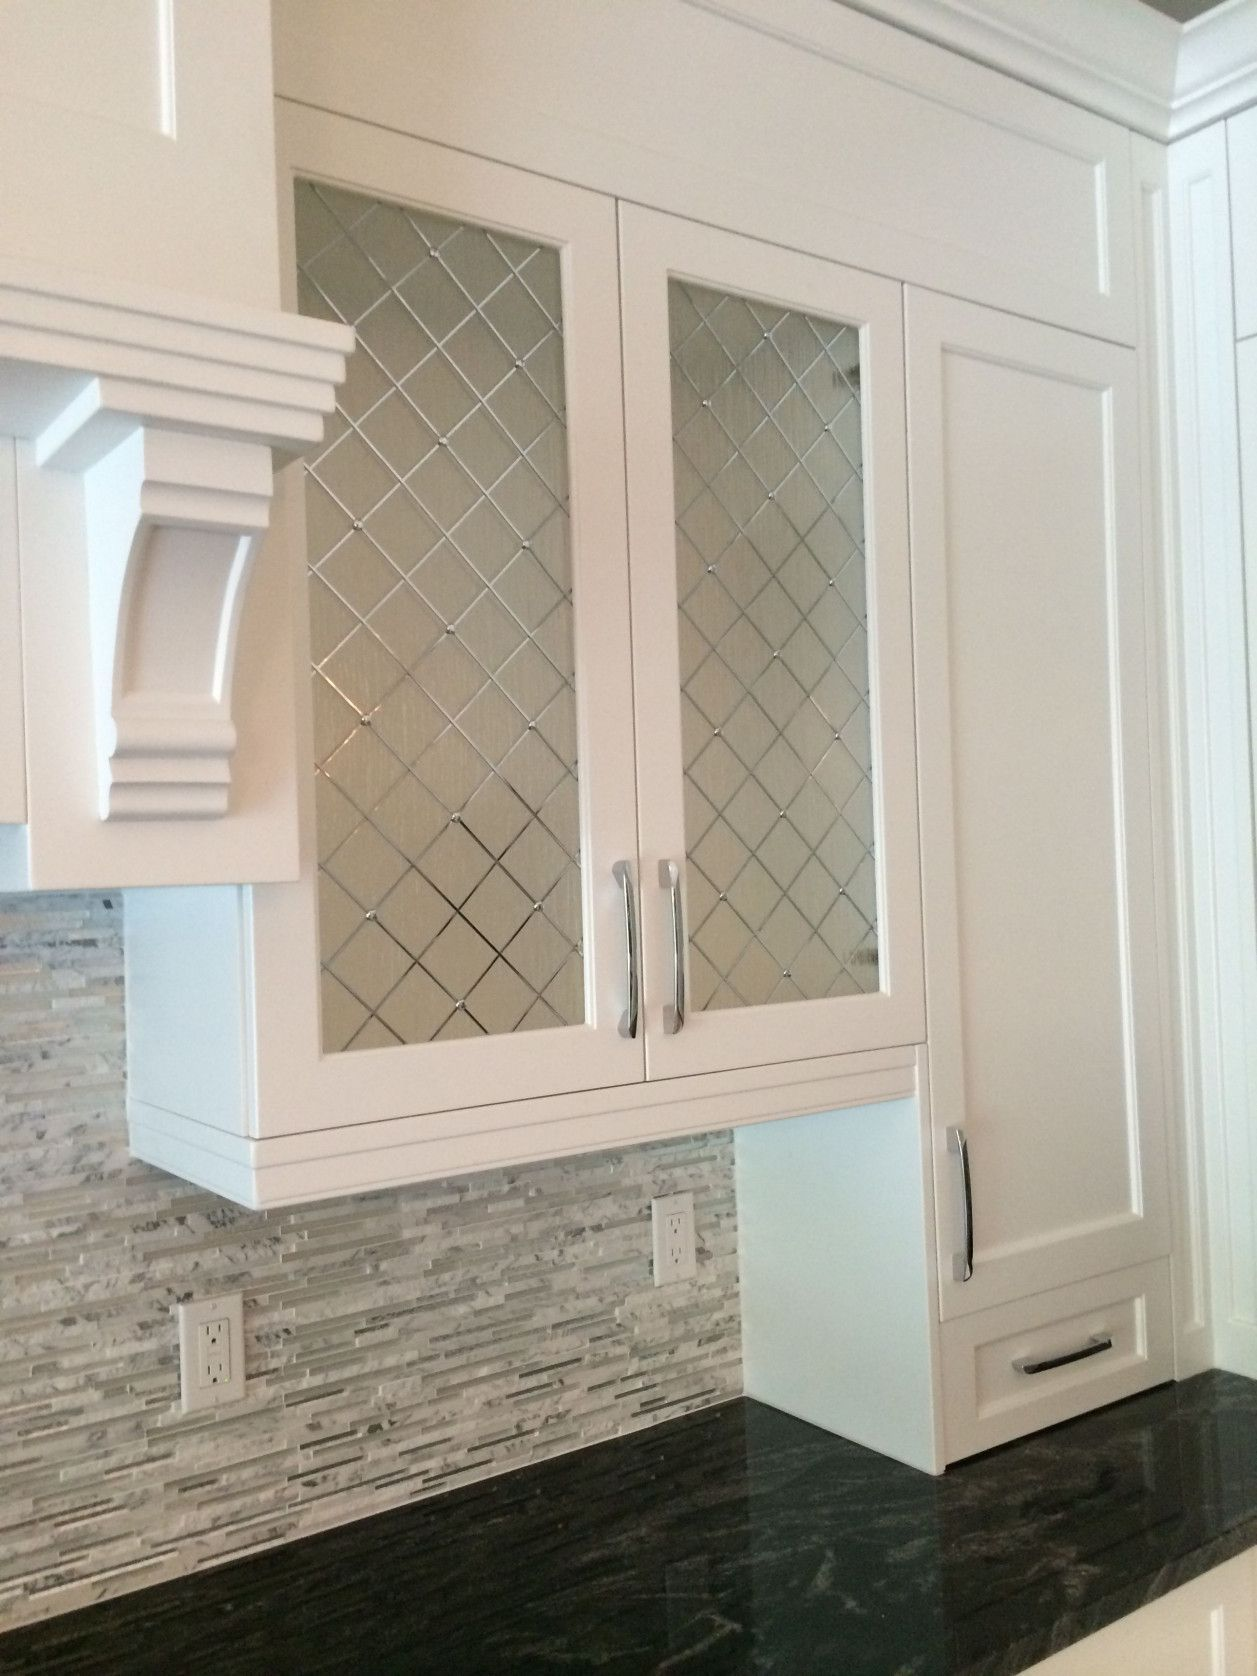 cabinet zdif upper style ppi best pic trend the cabinets inserts incredible kitchen glass for with u vanity seedy and design doors